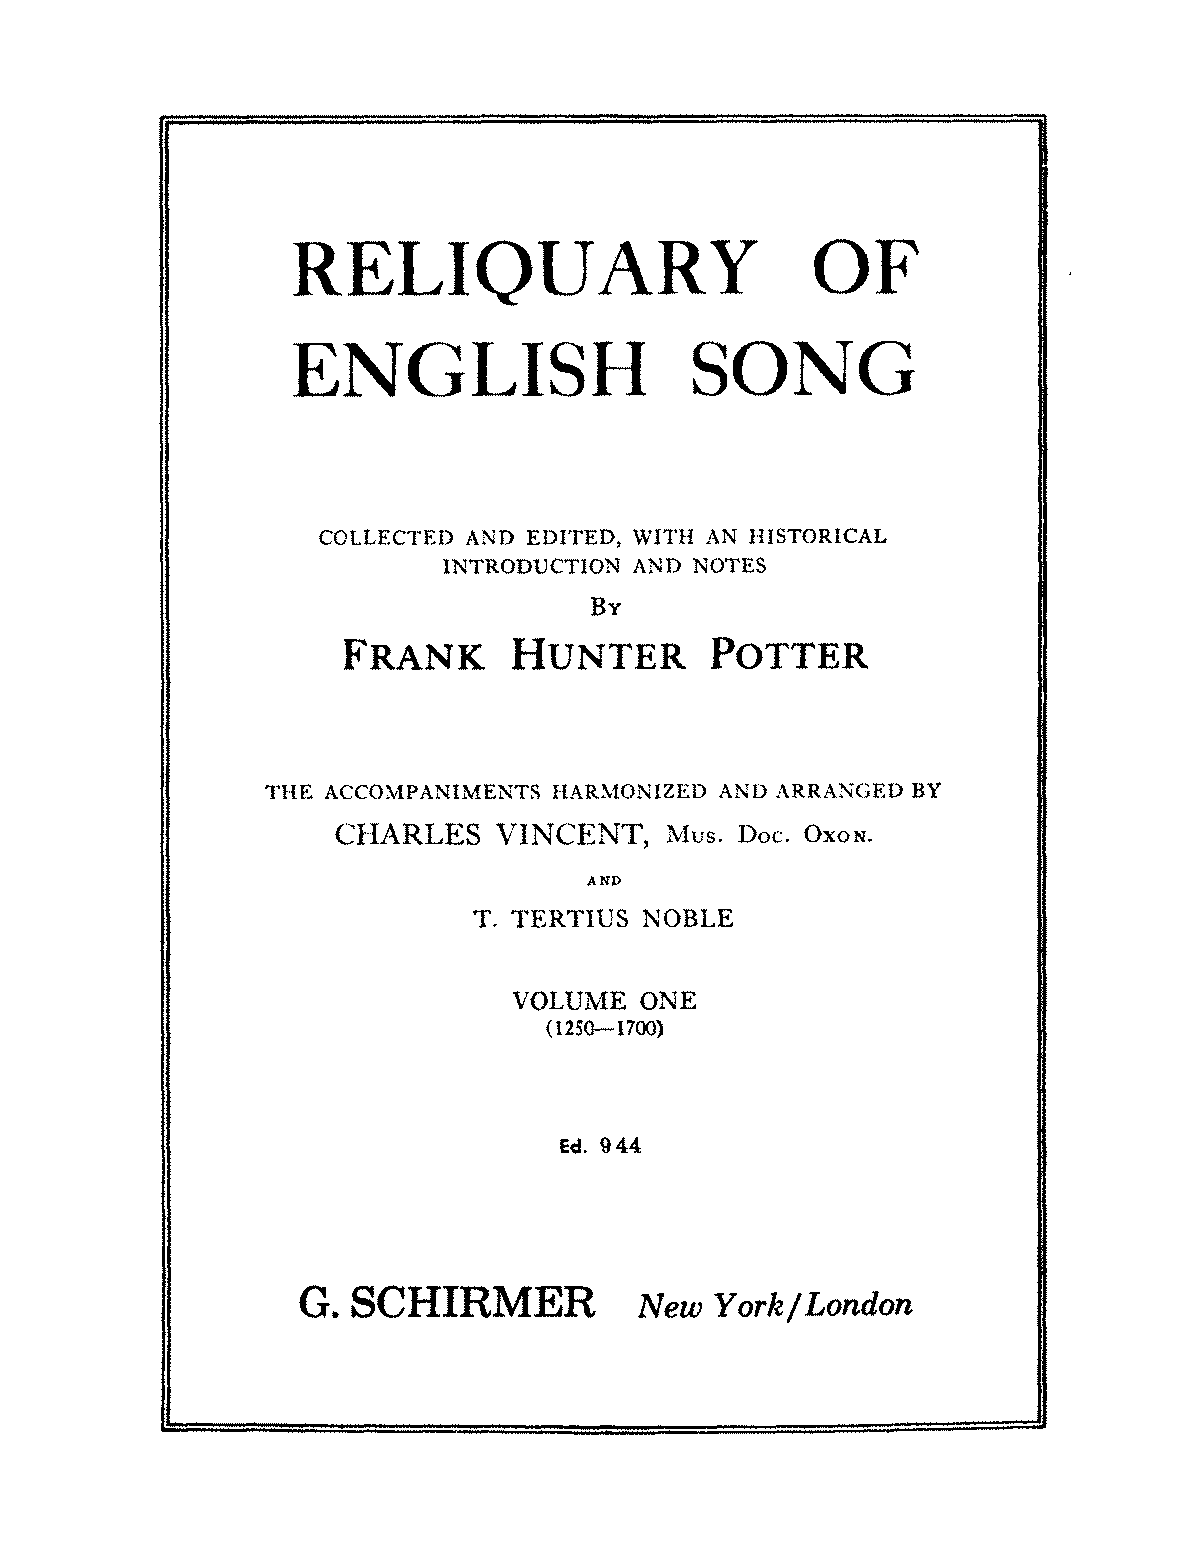 PMLP70073-Various-Reliquary of English Song (1250-1700).pdf